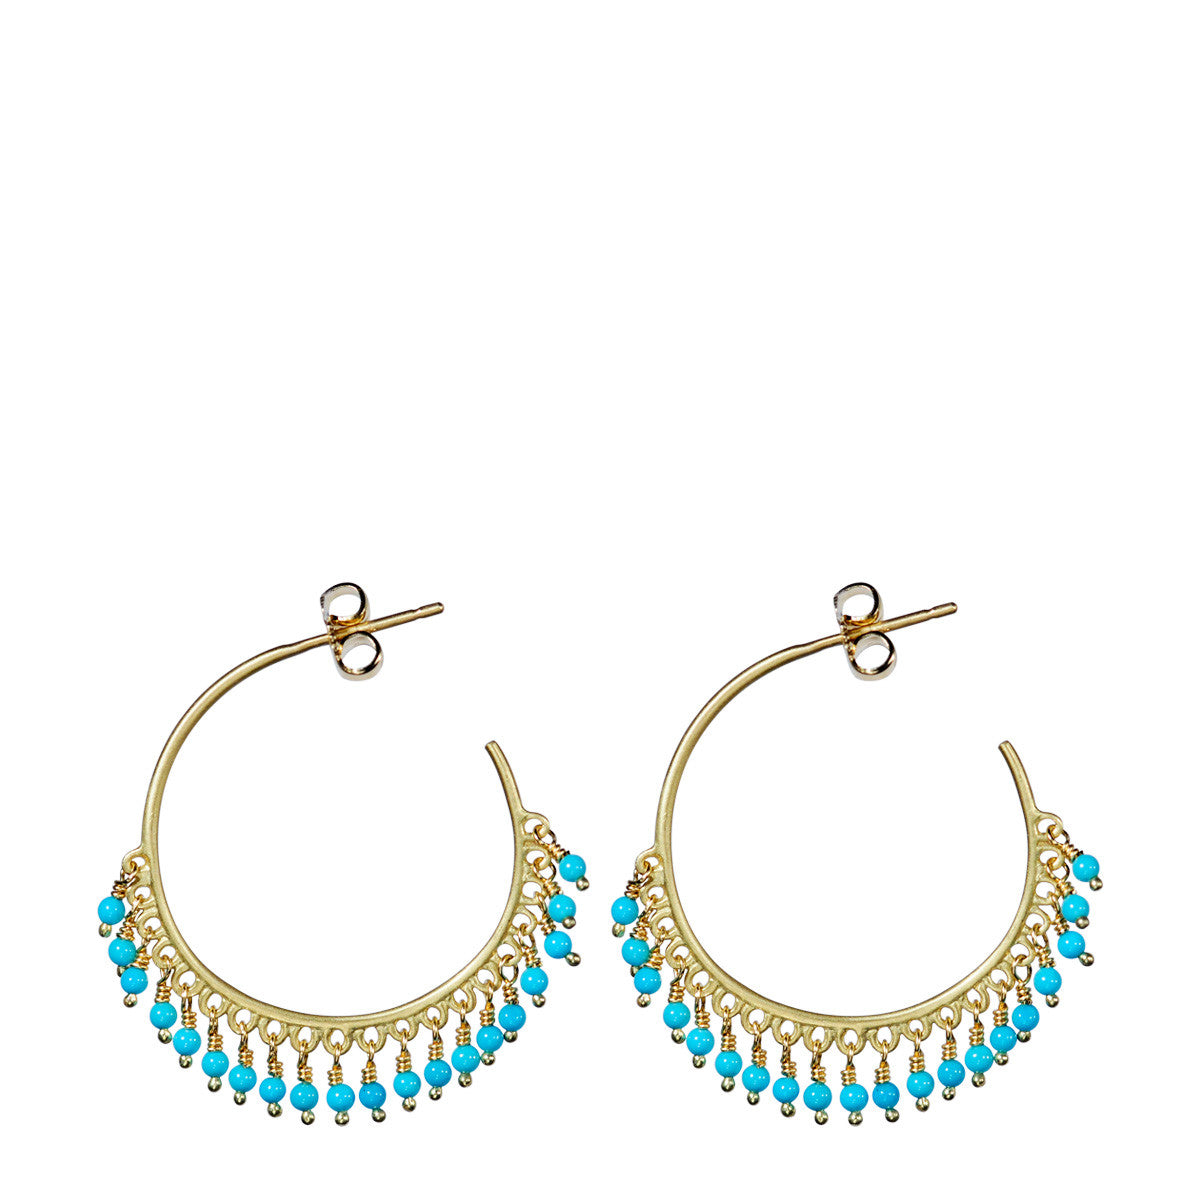 18K Gold Medium Fine Turquoise Beaded Hoop Earrings